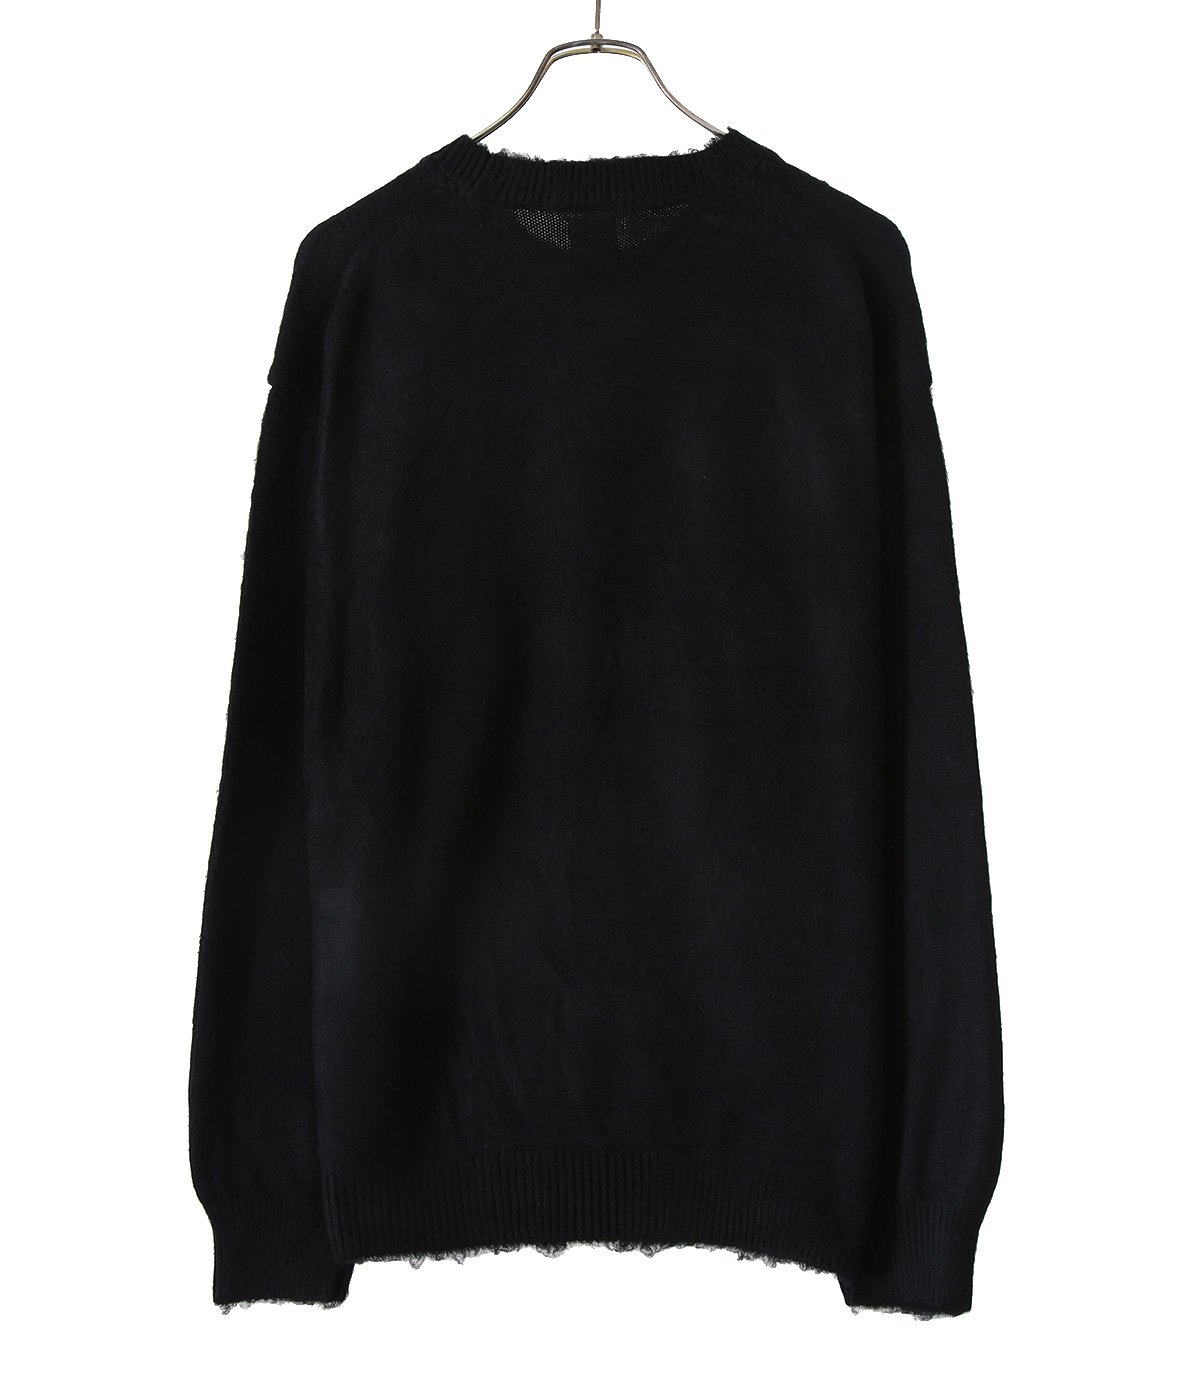 SILK BRUSHED KNIT CREW NECK PULL OVER